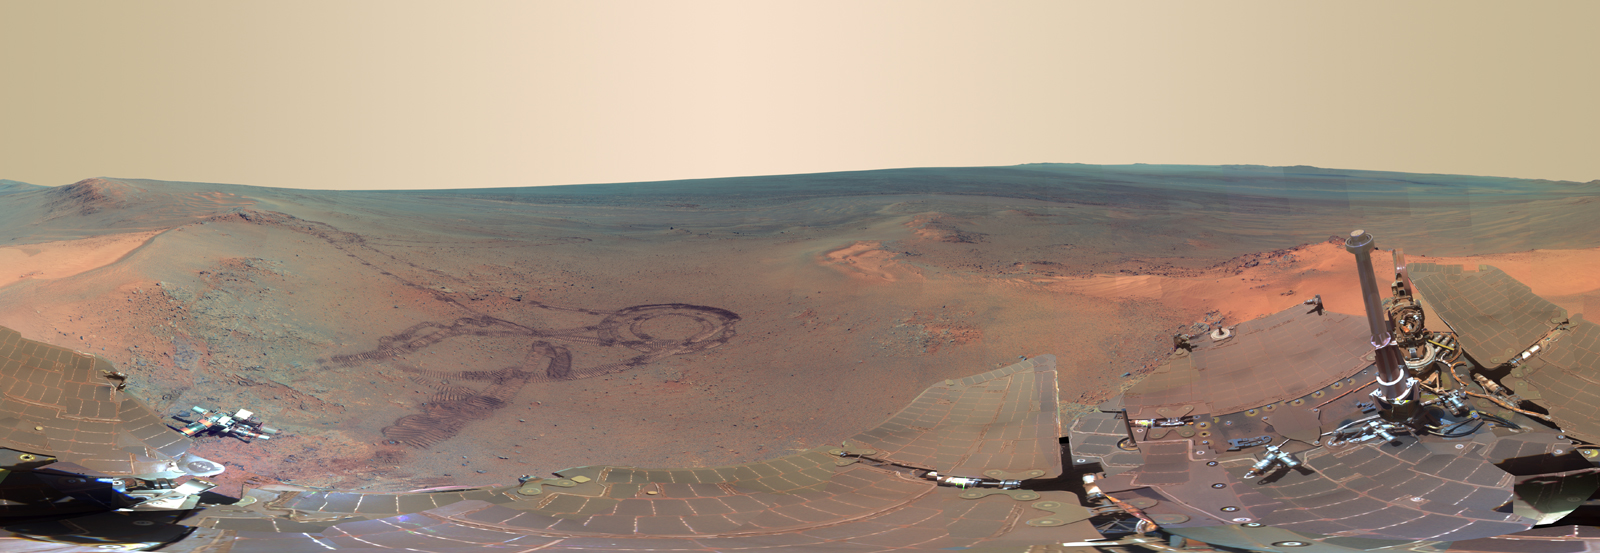 Big Picture on Mars: NASA Rover Snaps Amazing Red Planet View